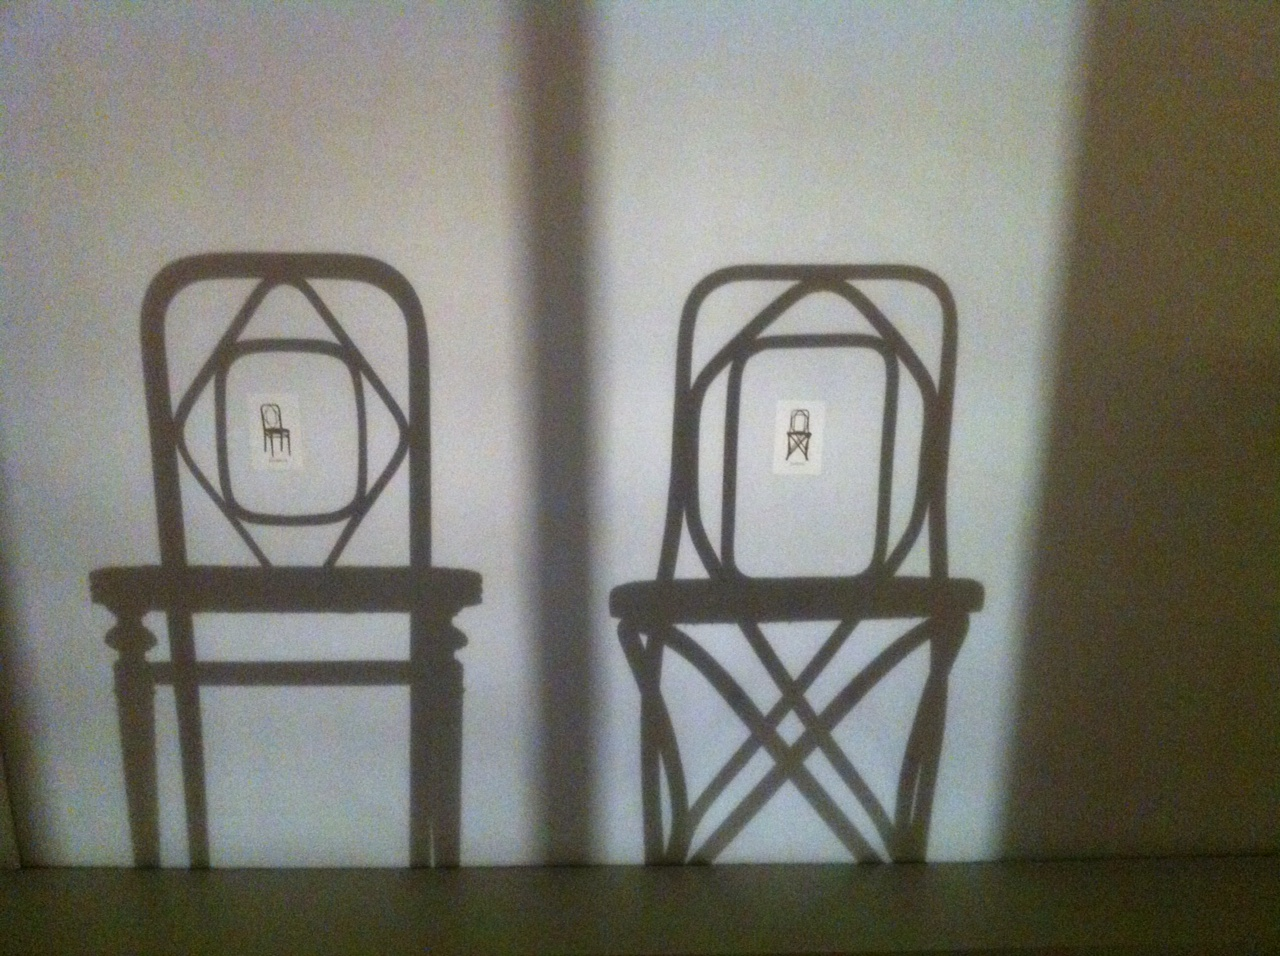 Viennese Chairs